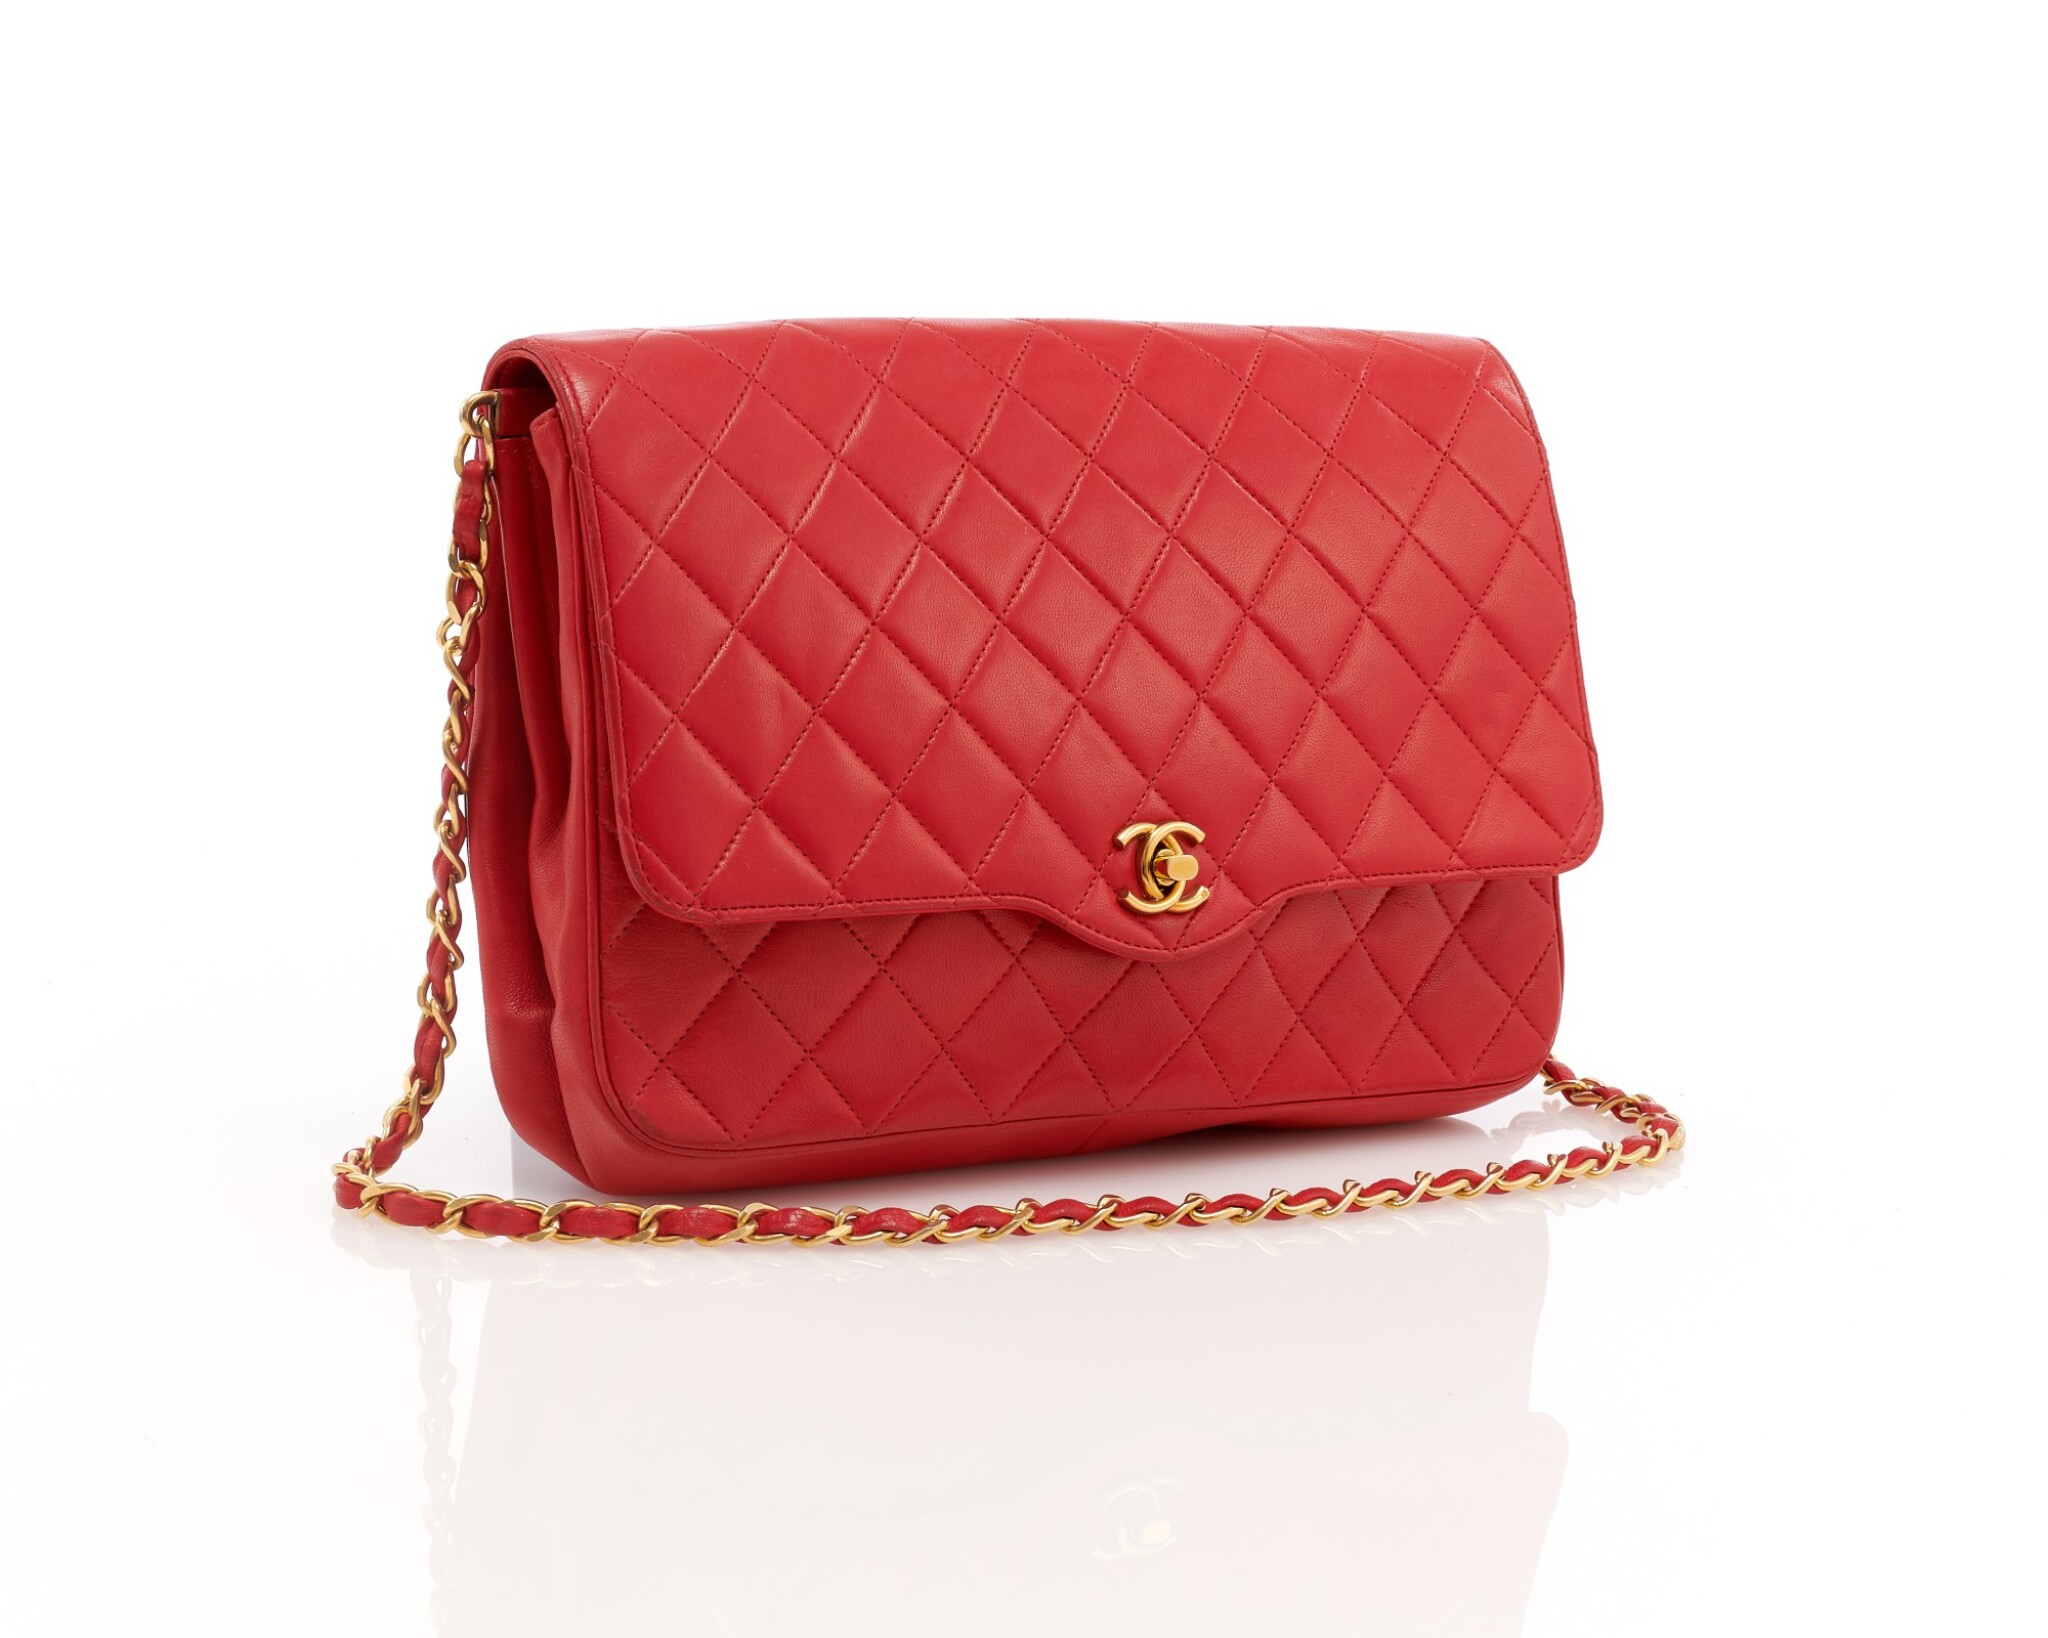 View full screen - View 1 of Lot 69. Red quilted leather and gold-tone metal chain shoulder bag.